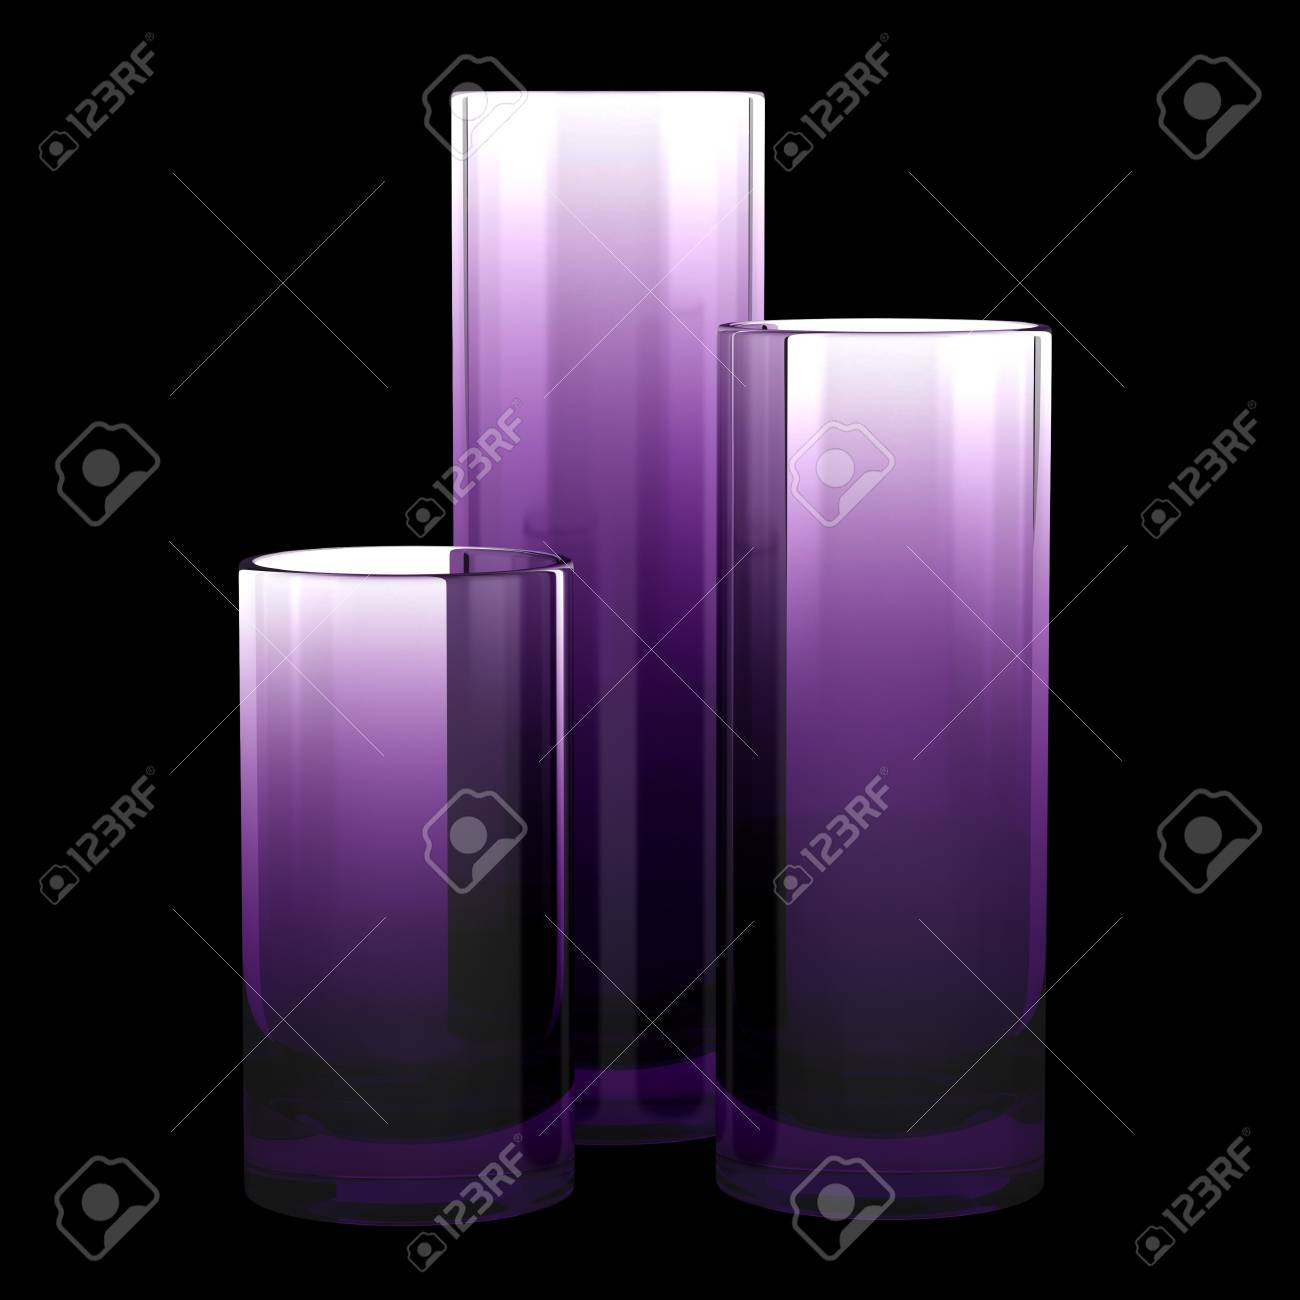 Purple glass vases gallery vases design picture three purple glass vases isolated on black background stock photo three purple glass vases isolated on reviewsmspy